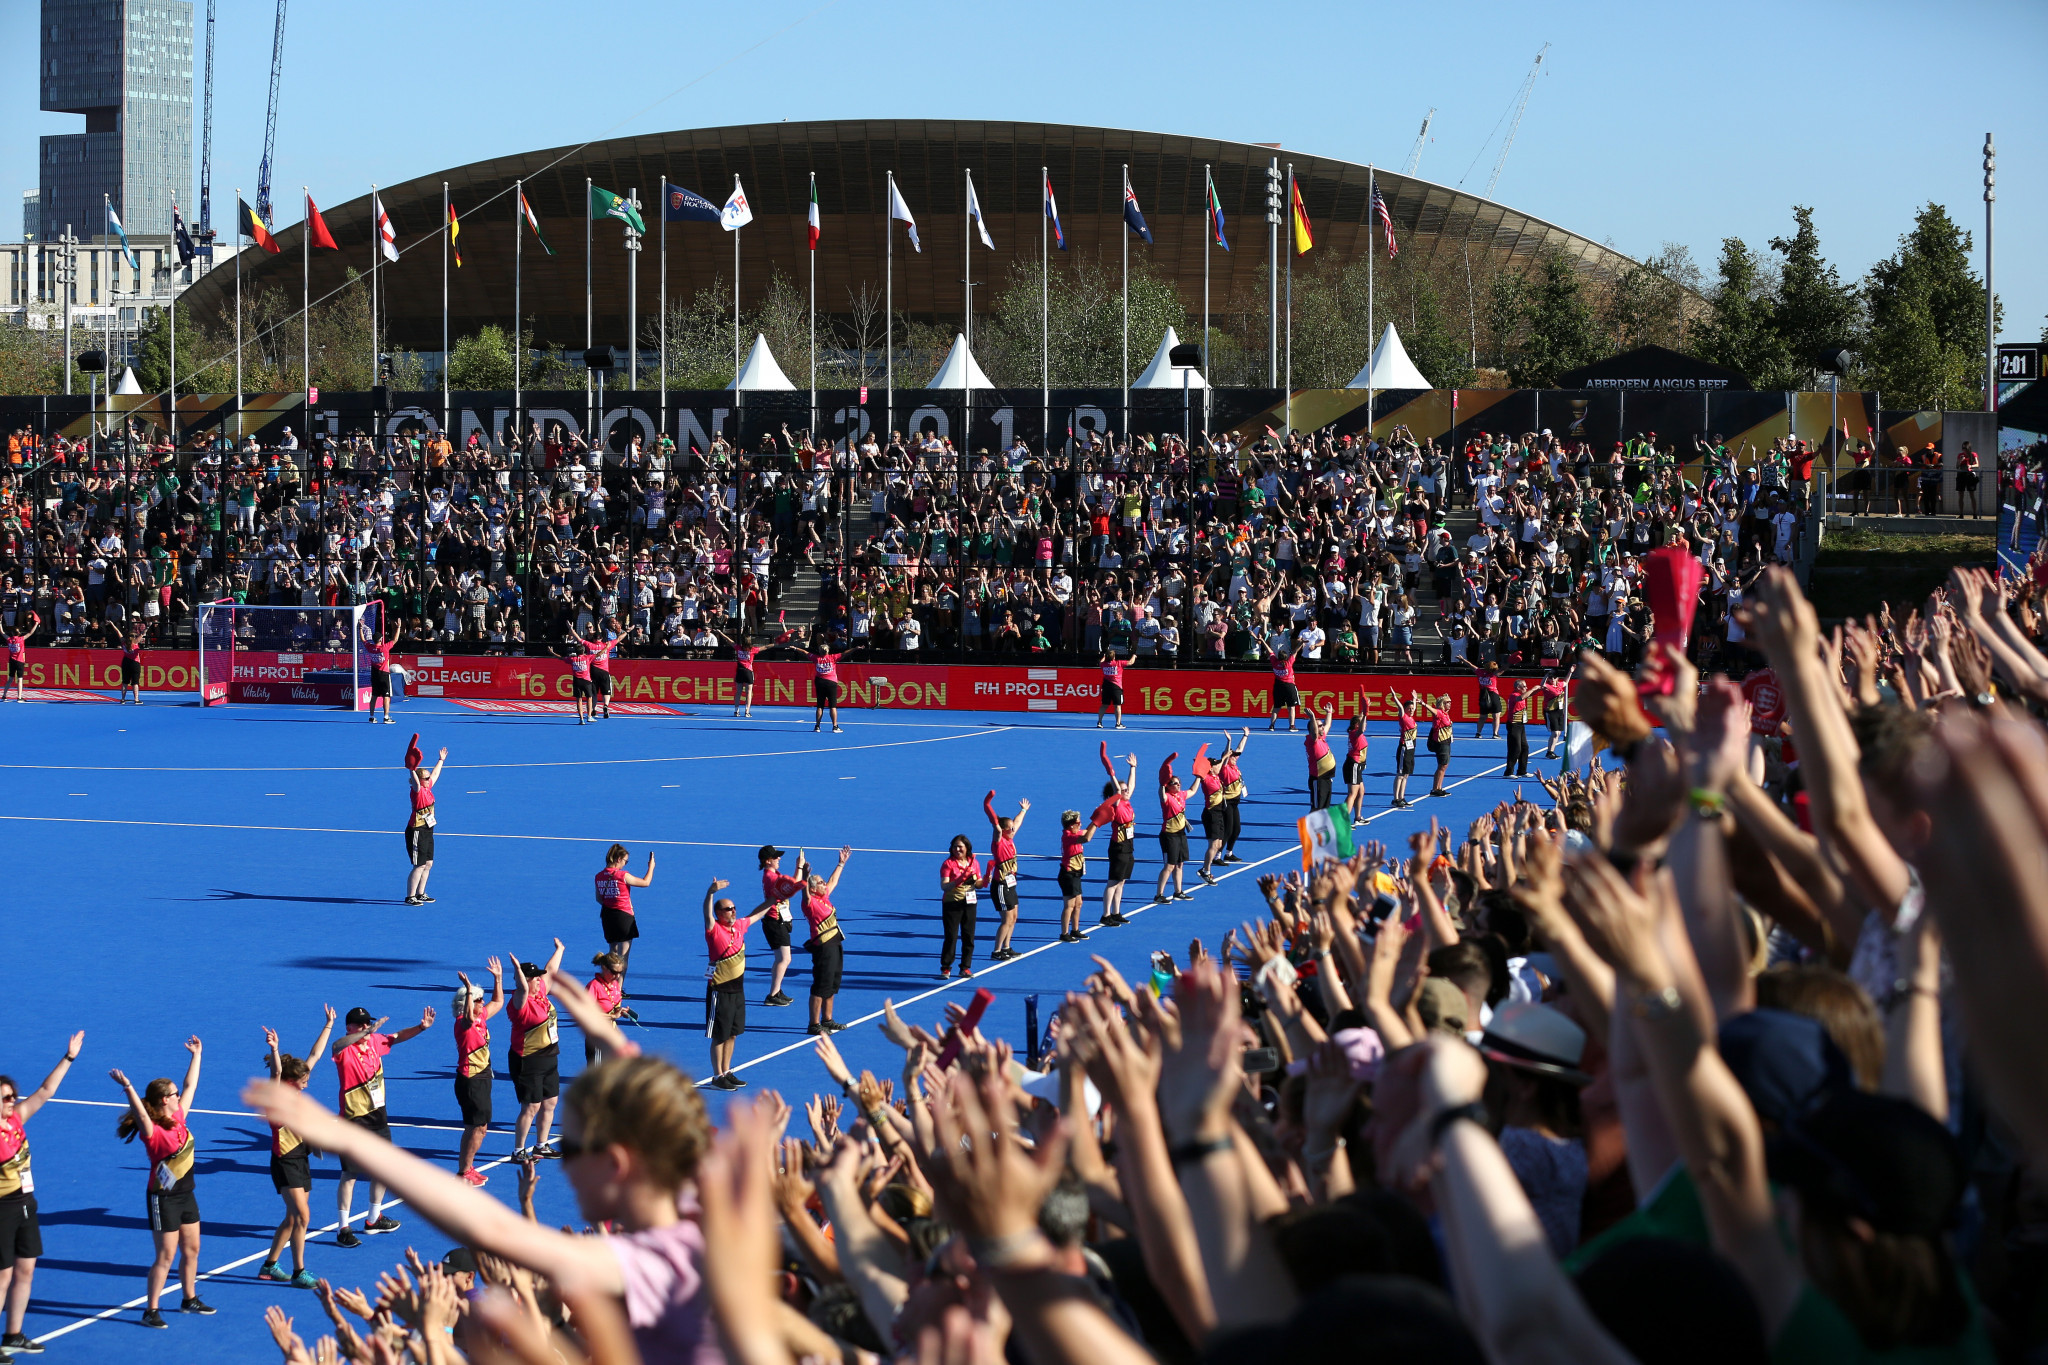 London hosted the FIH Women's World Cup last year - now bids are in to host the next versions for men and women ©Getty Images